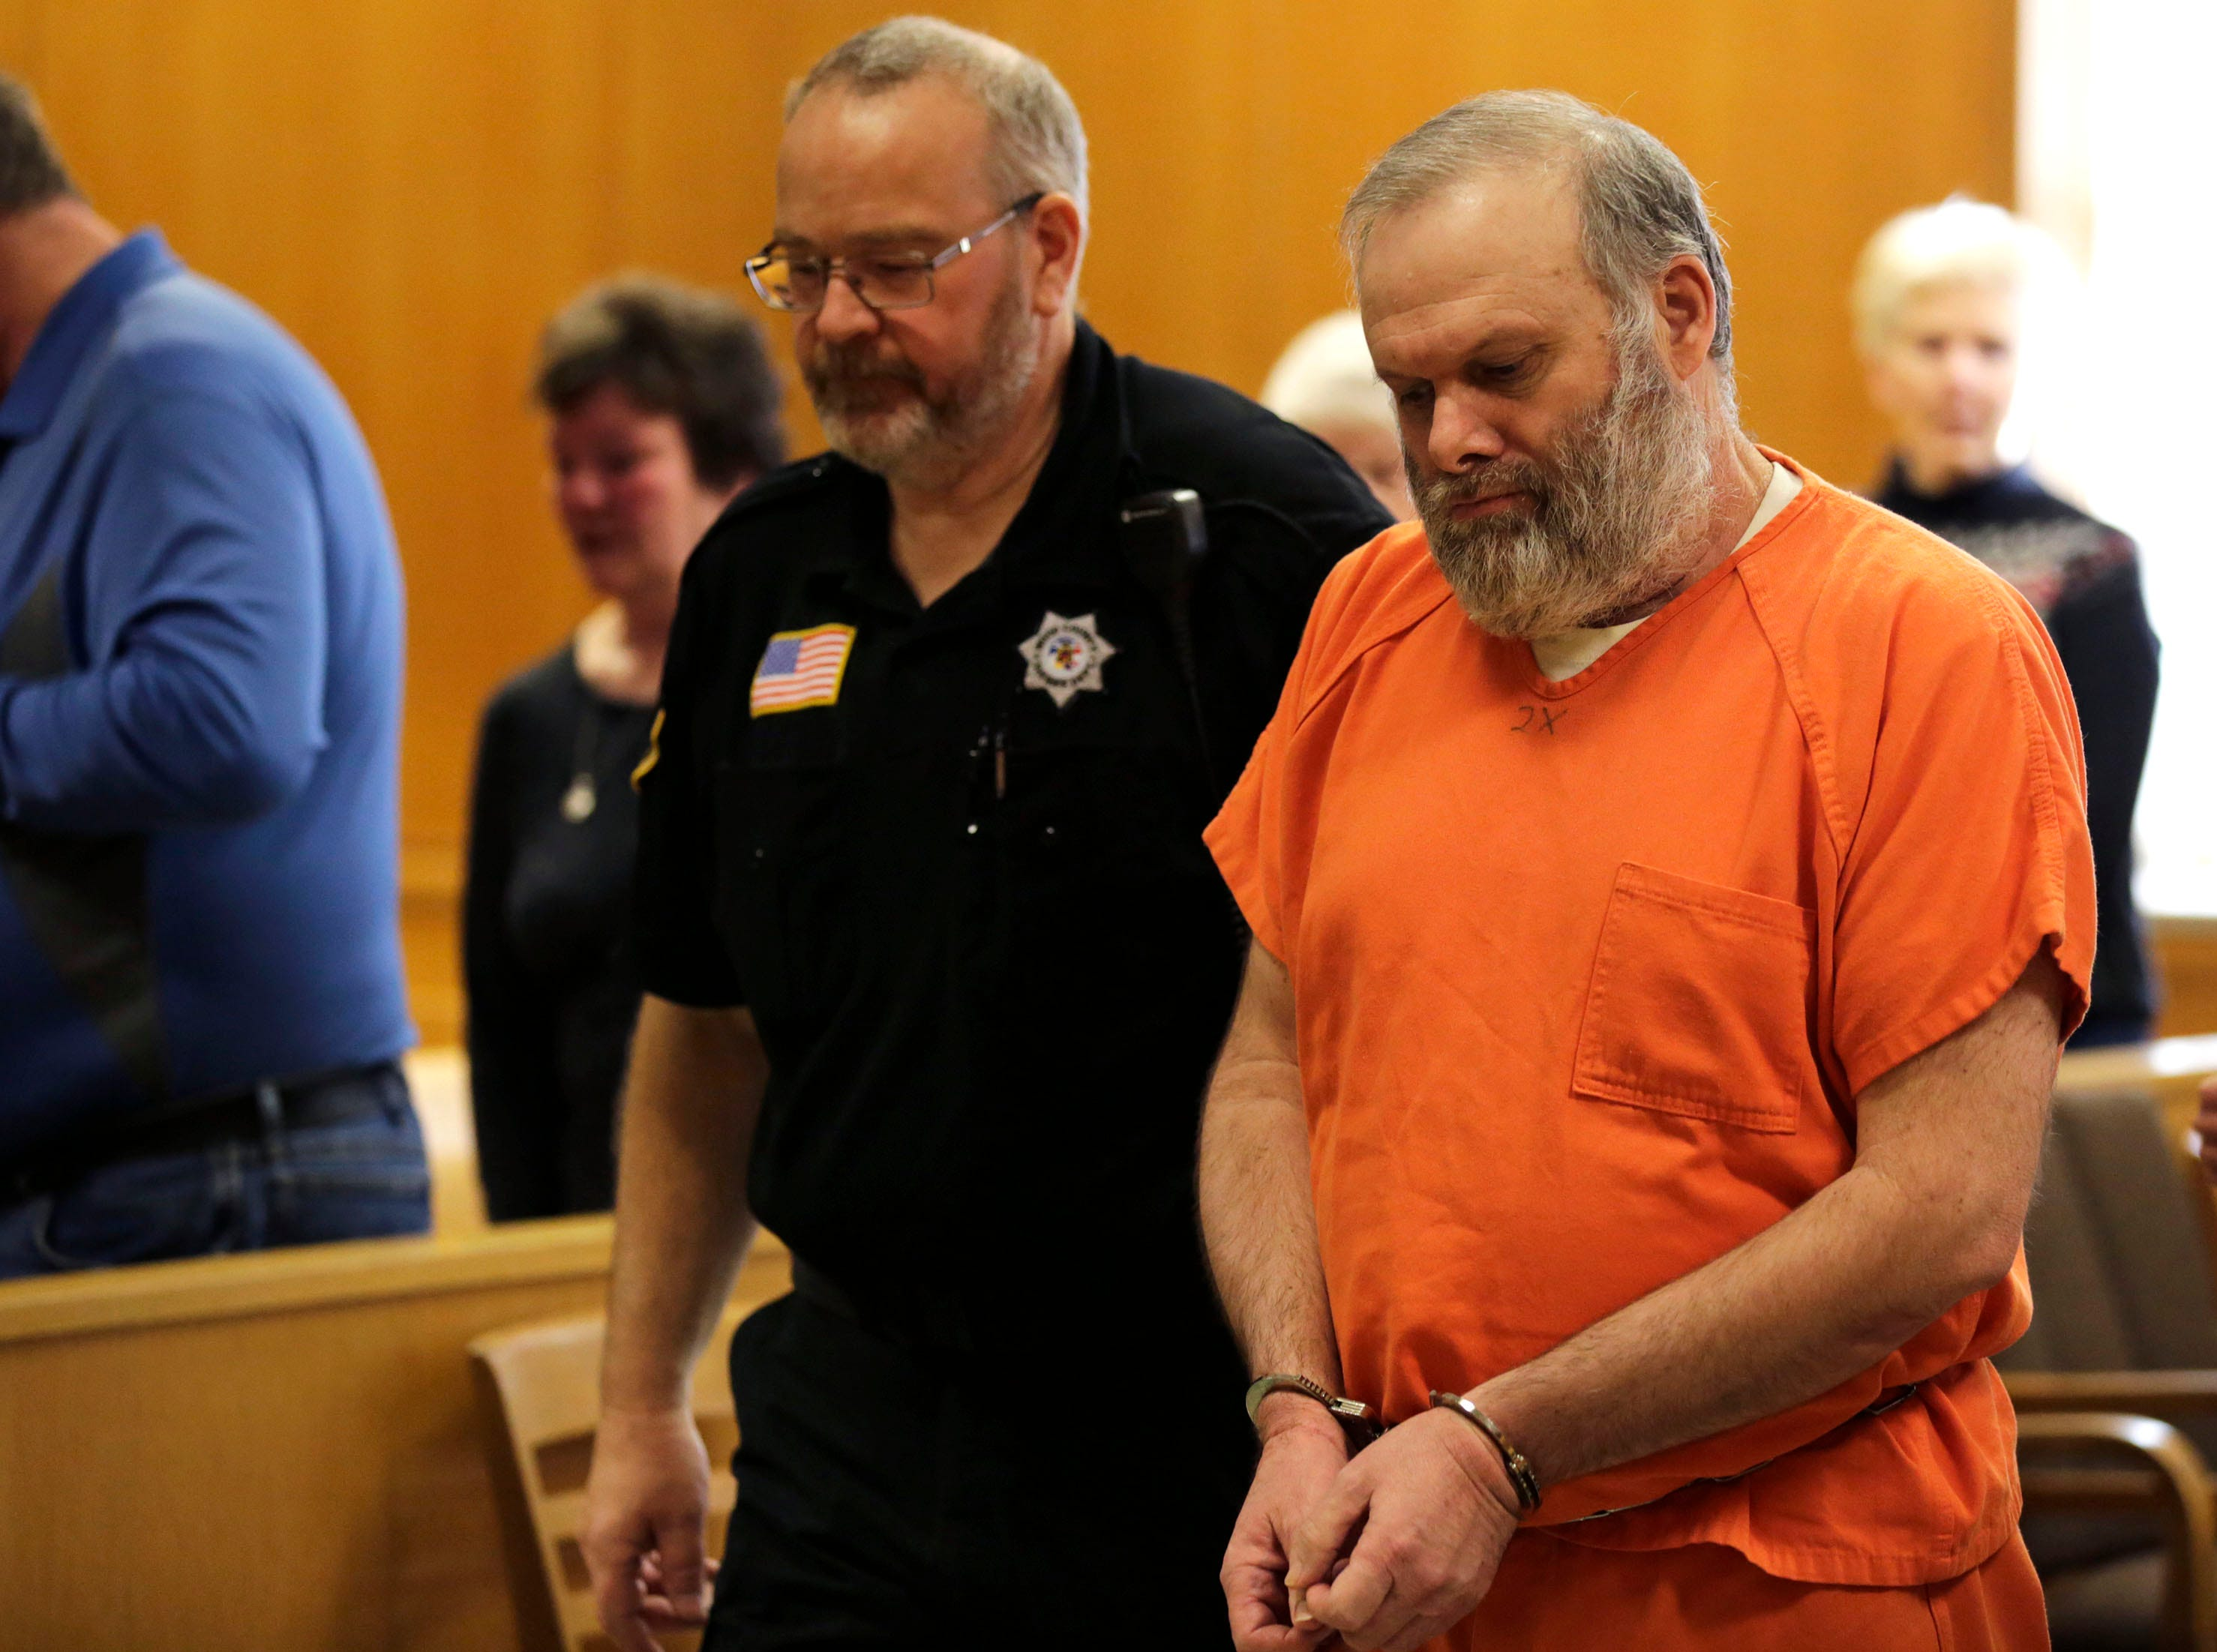 Defendant Gary Bohman is escorted from the courtroom after a sentencing hearing on Tuesday, December 18, 2018, at the Wood County courthouse in Wisconsin Rapids, Wis. Bohman was sentenced to life in prison with no possibility of parole for the murder of Christopher Race.Tork Mason/USA TODAY NETWORK-Wisconsin